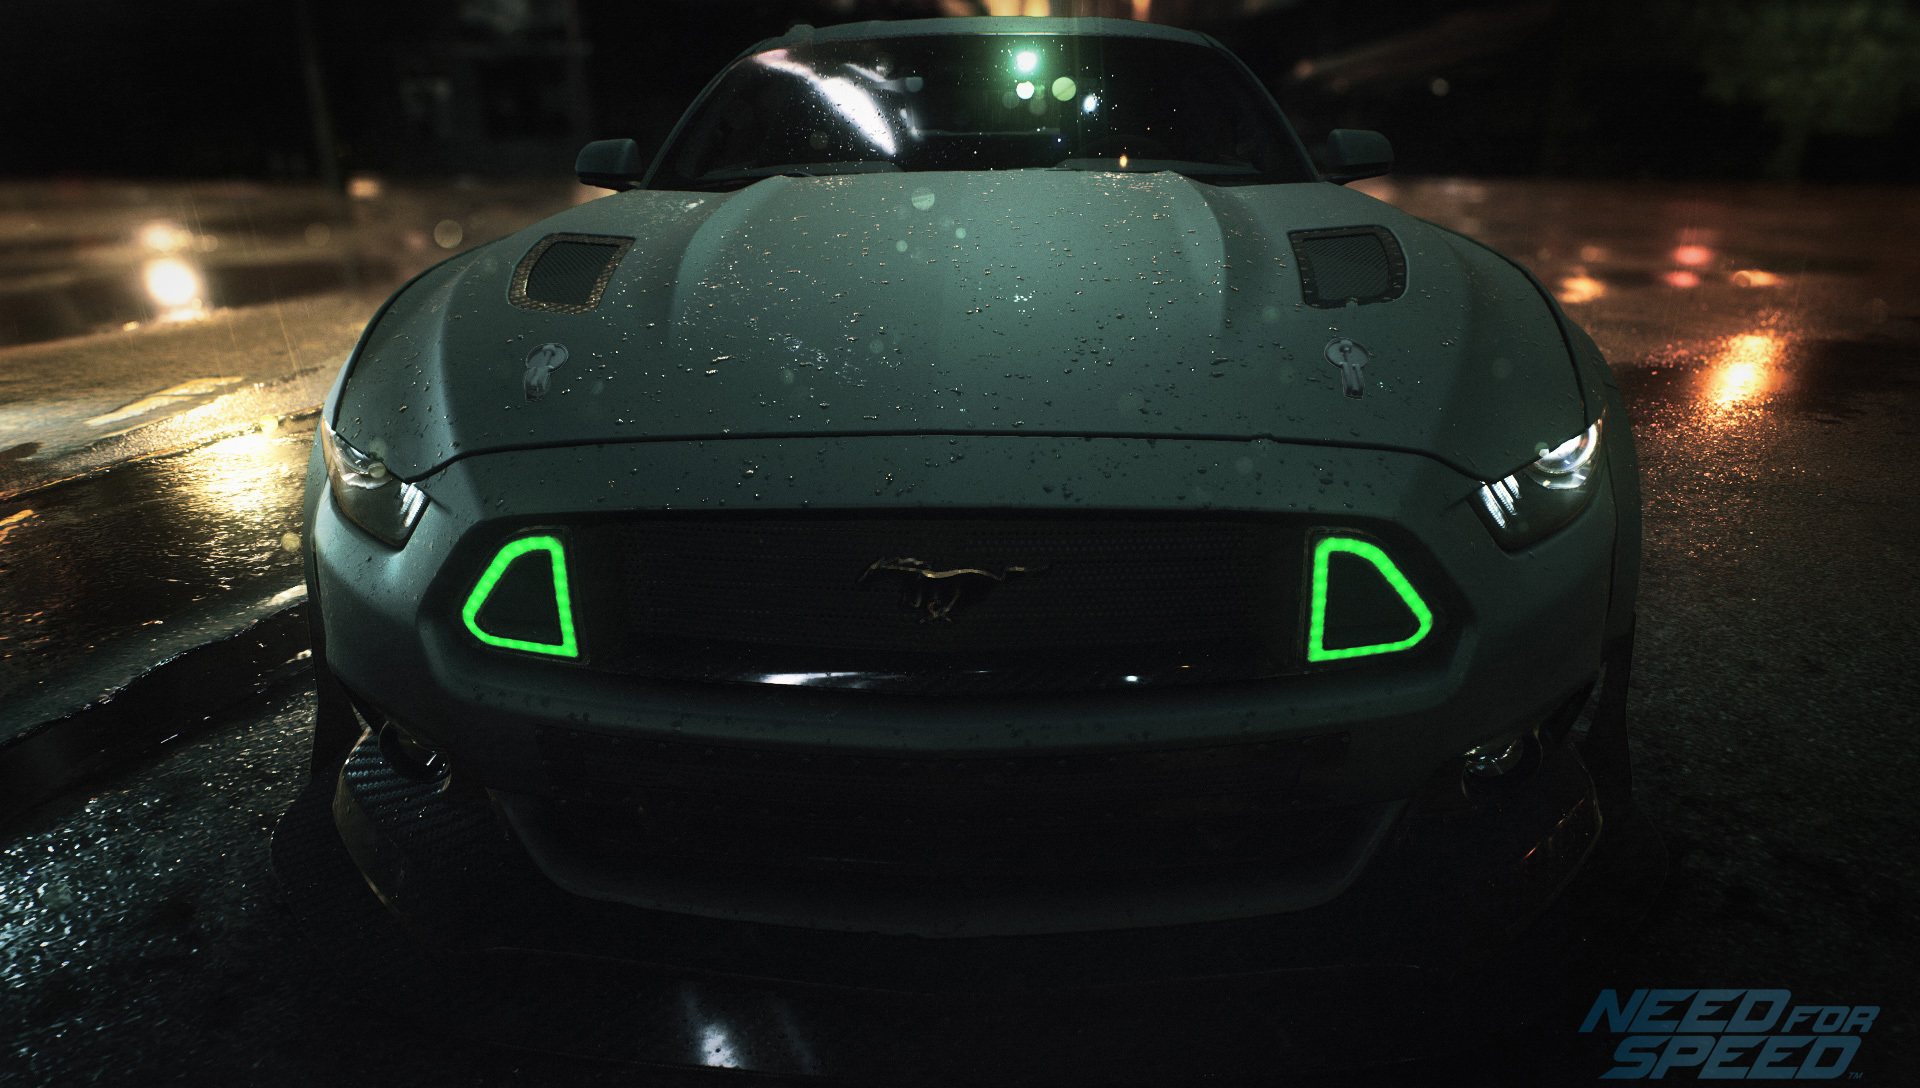 need_for_speed-latest version